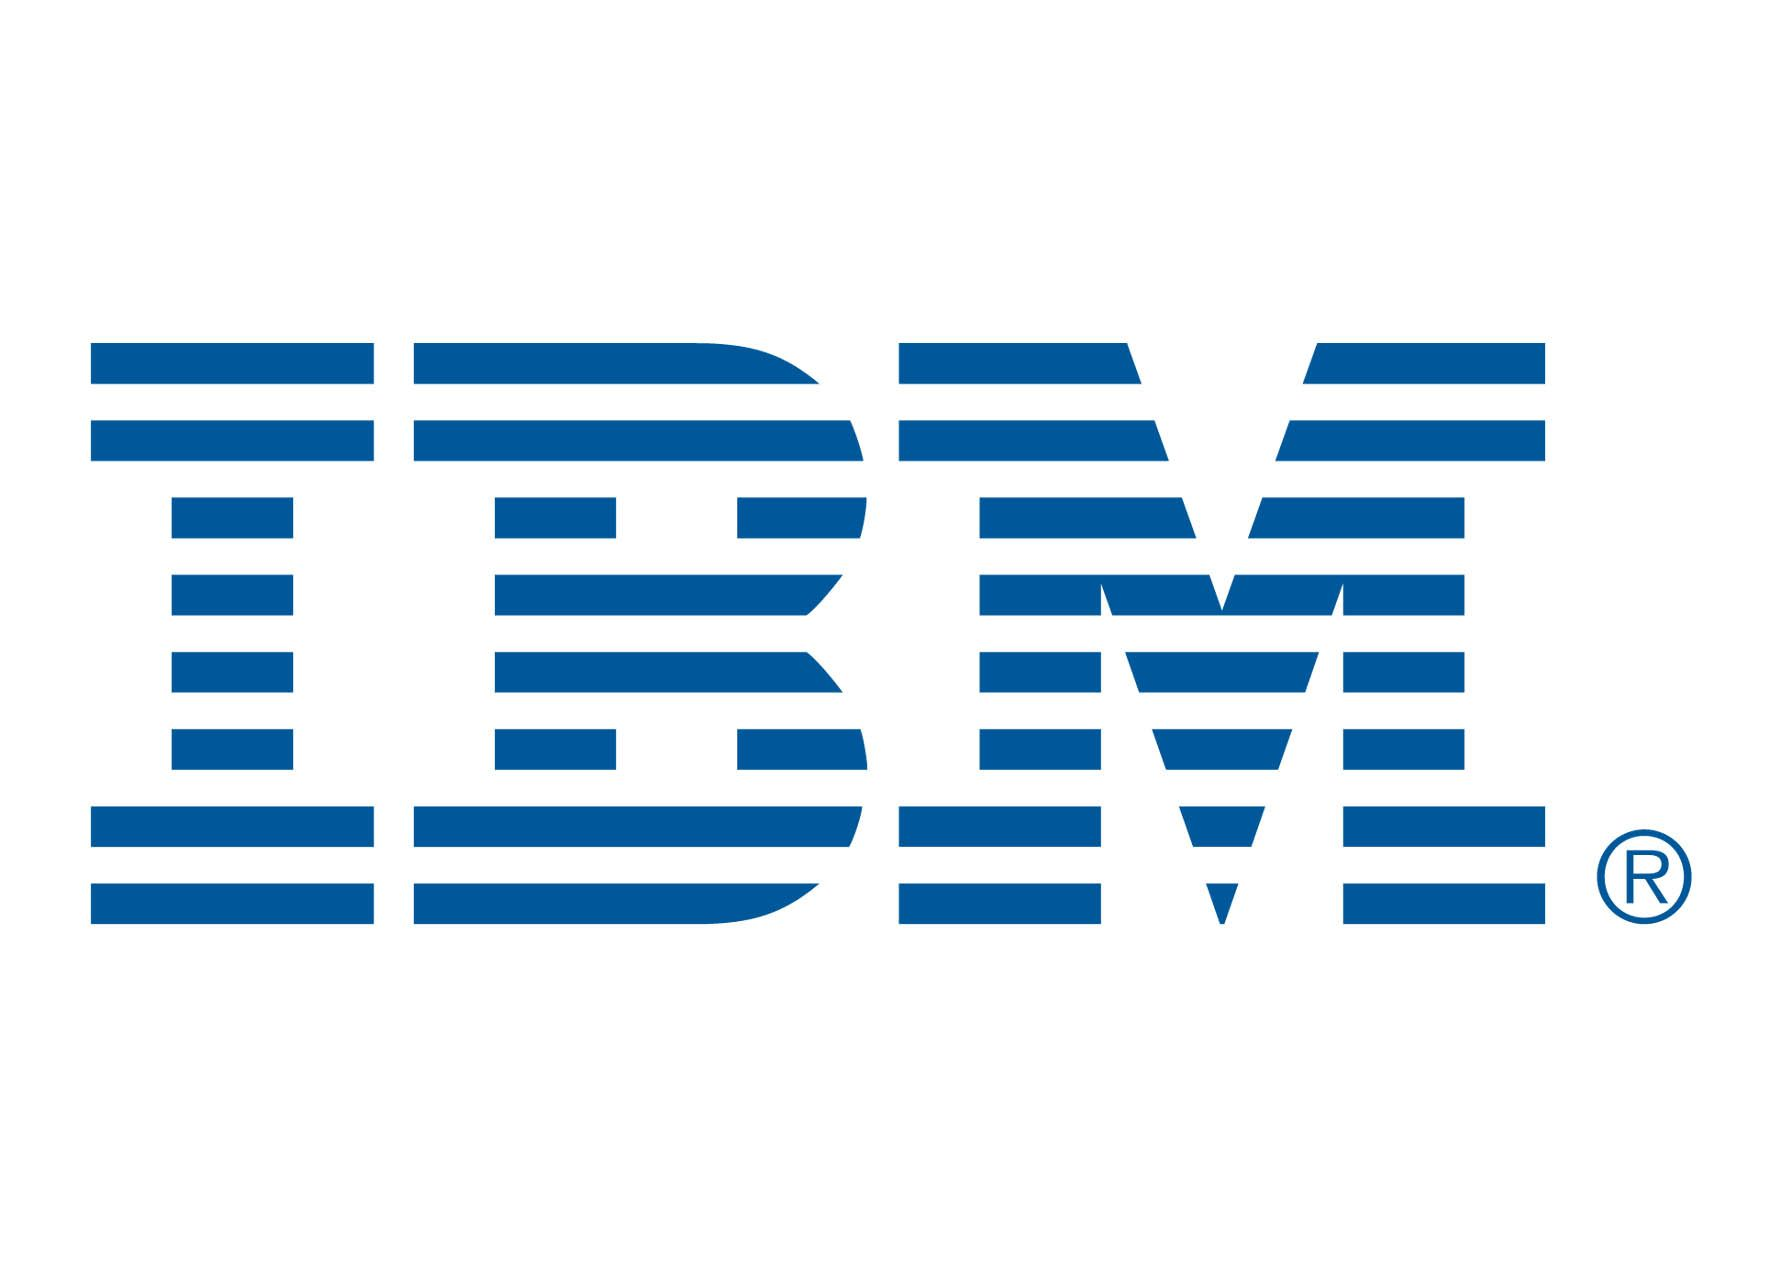 IBM Logo - File:IBM logo in.jpg - Wikimedia Commons